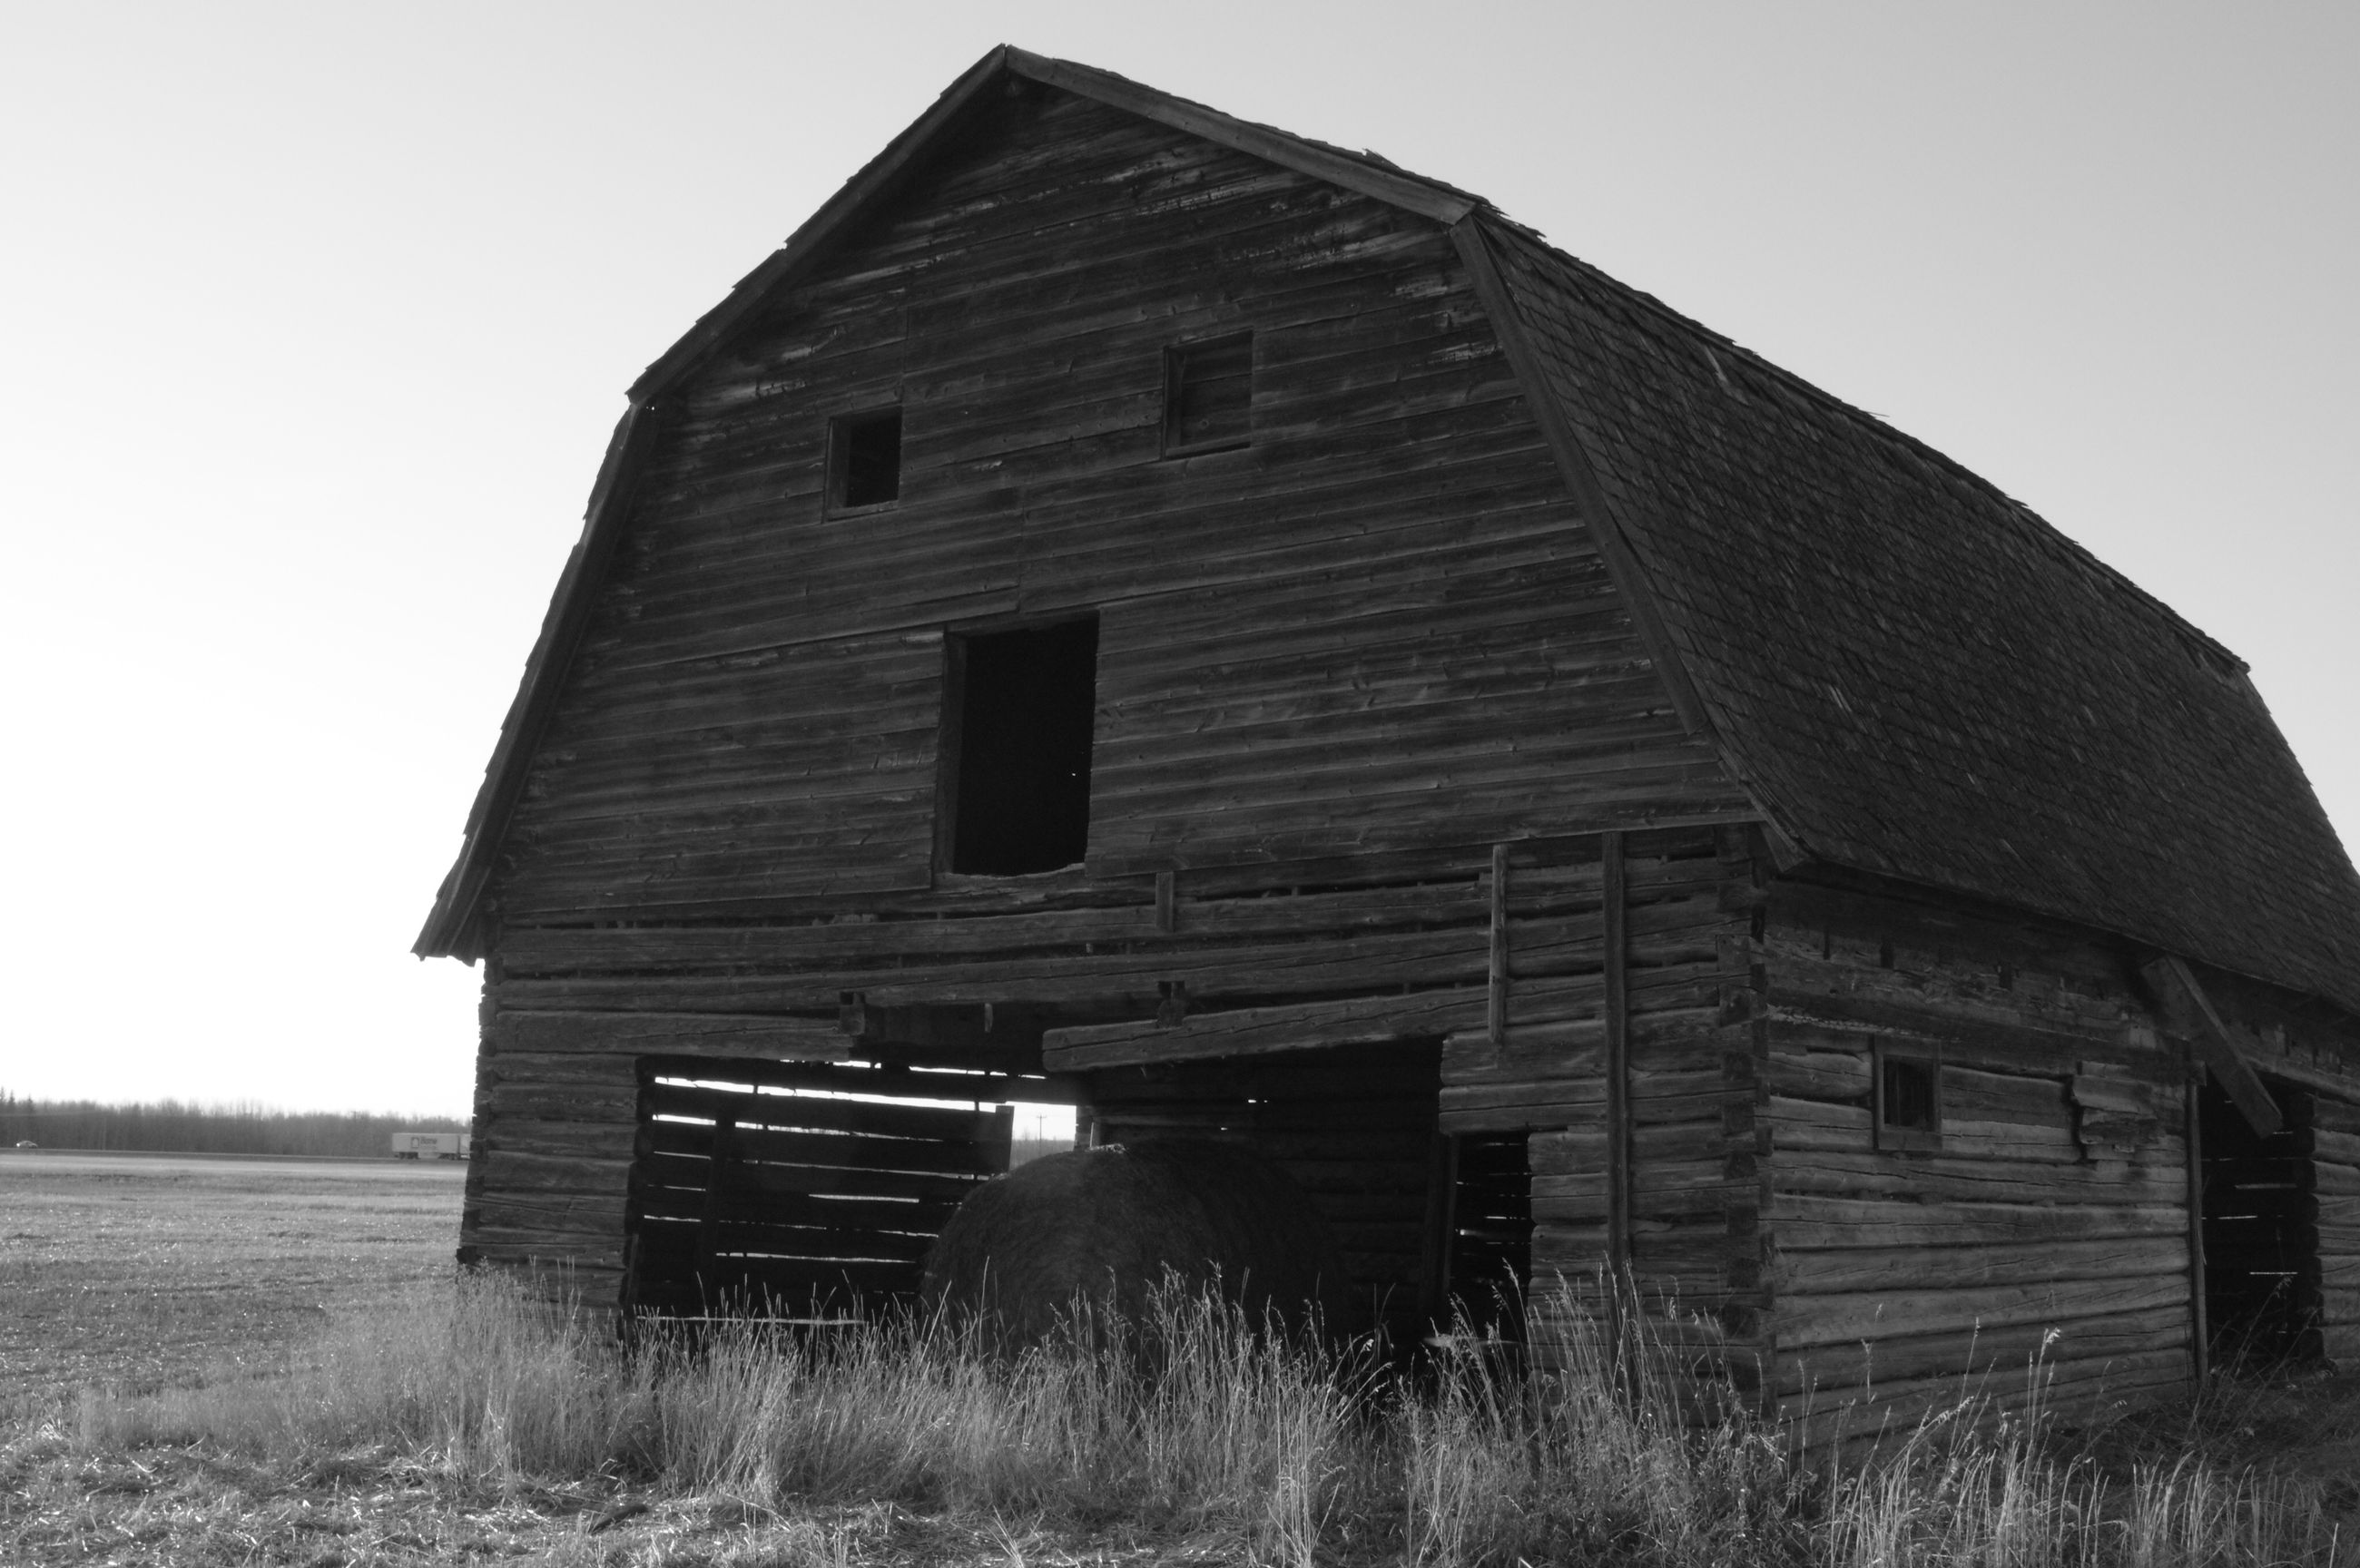 building exterior, architecture, built structure, abandoned, house, old, obsolete, clear sky, damaged, barn, field, exterior, run-down, low angle view, grass, window, deterioration, sky, residential structure, day